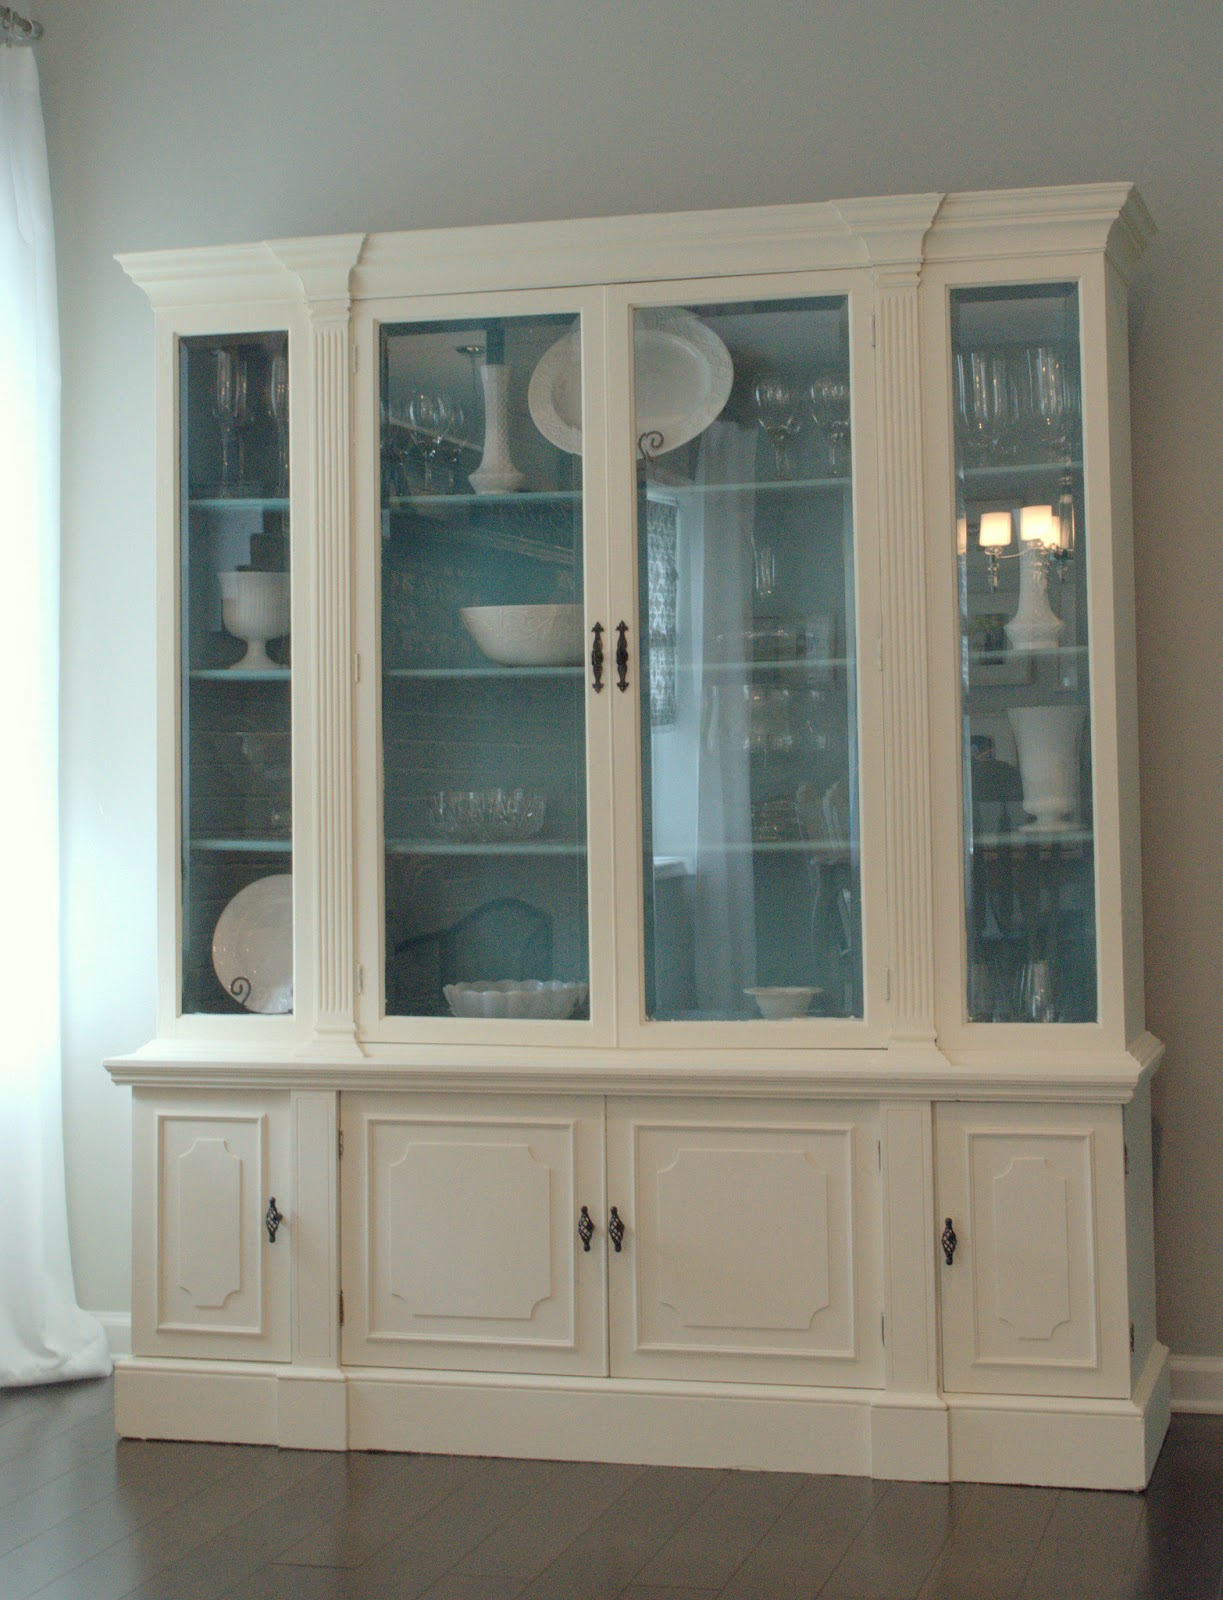 Chinese kitchen cabinets for Chinese kitchen cabinets